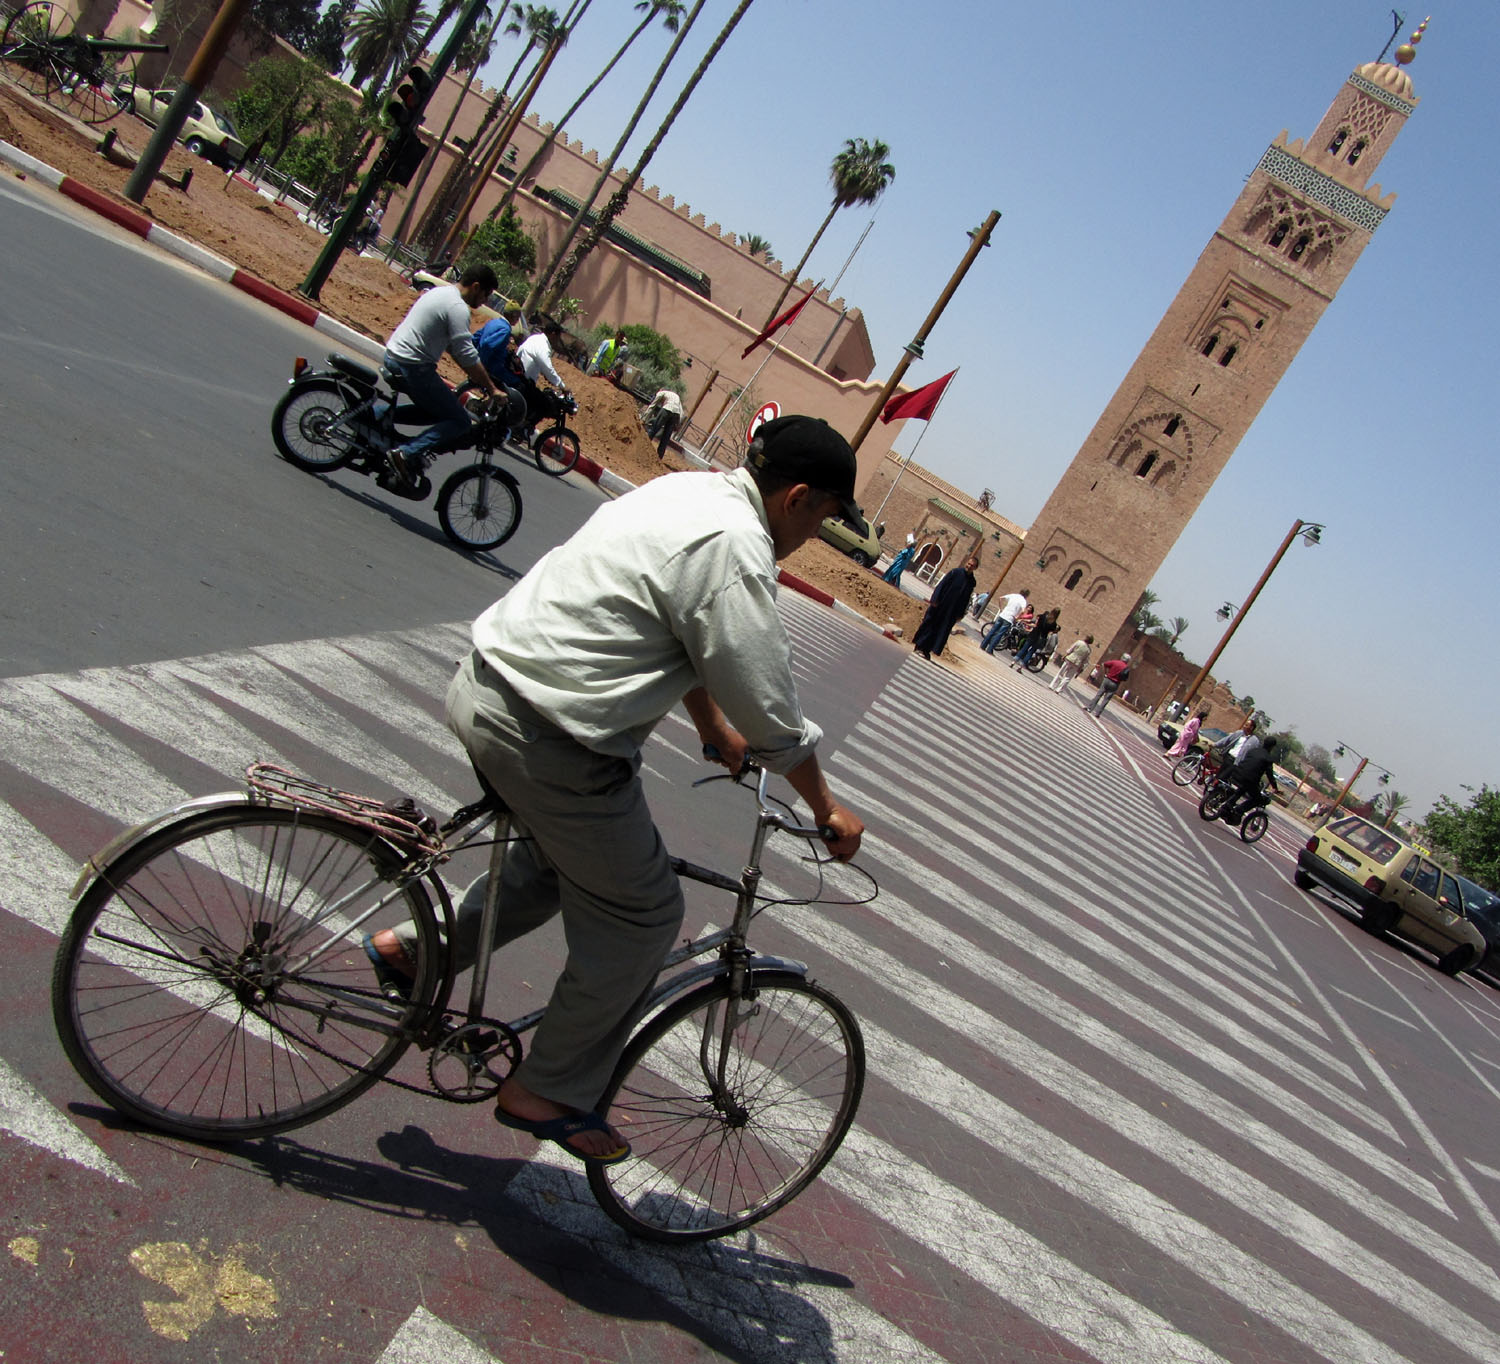 Morocco-Marrakech-Minaret-Bicycle